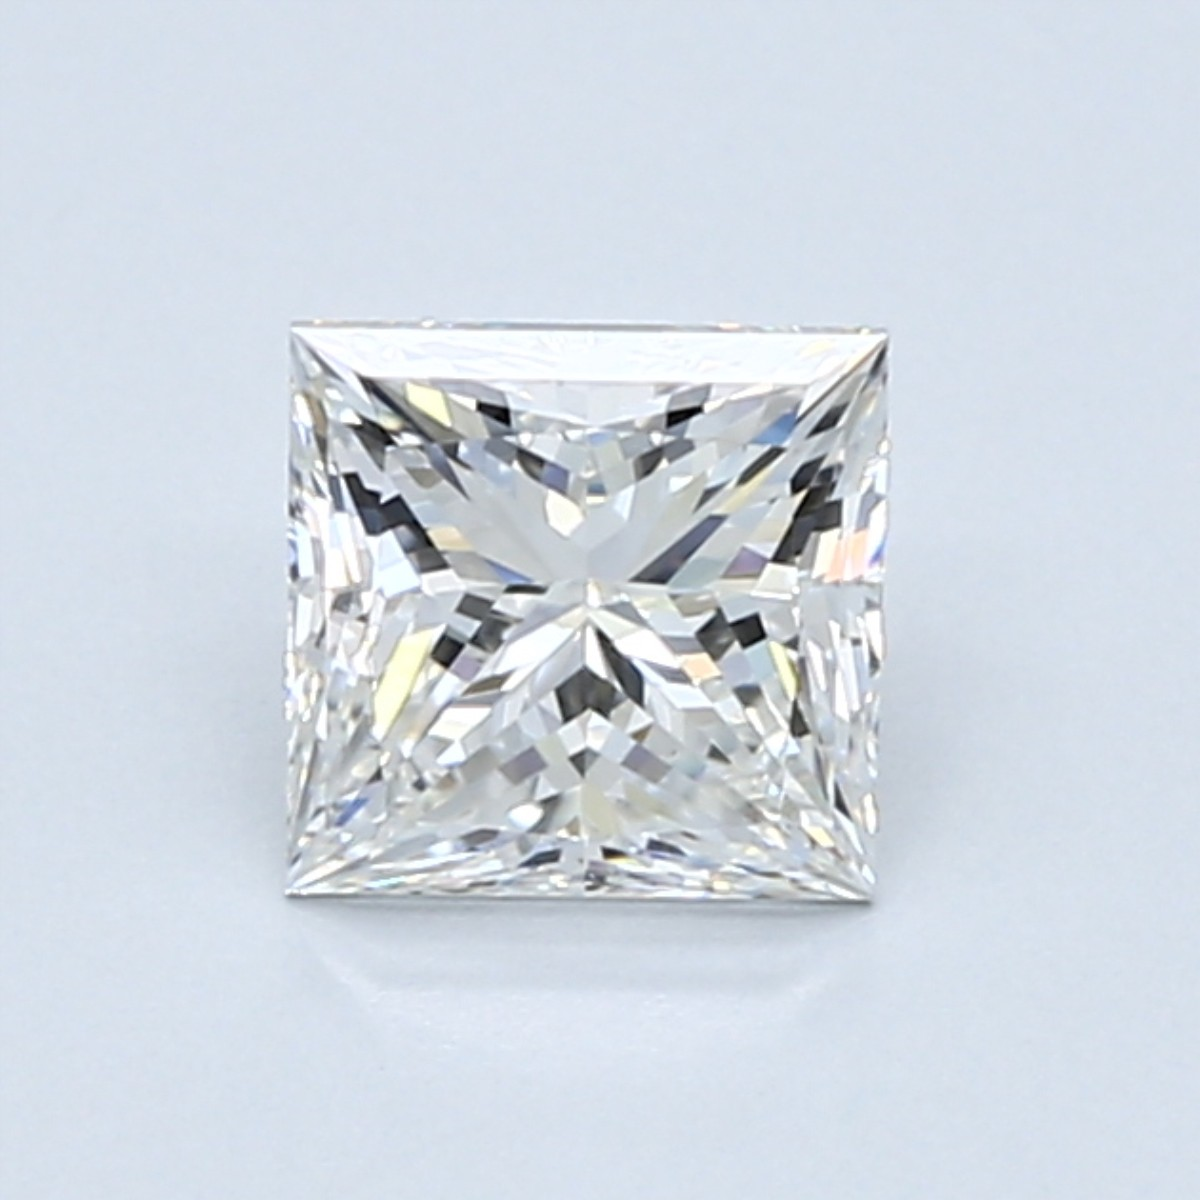 1 carat square princess cut diamond with a length-to-width ratio of 1.00